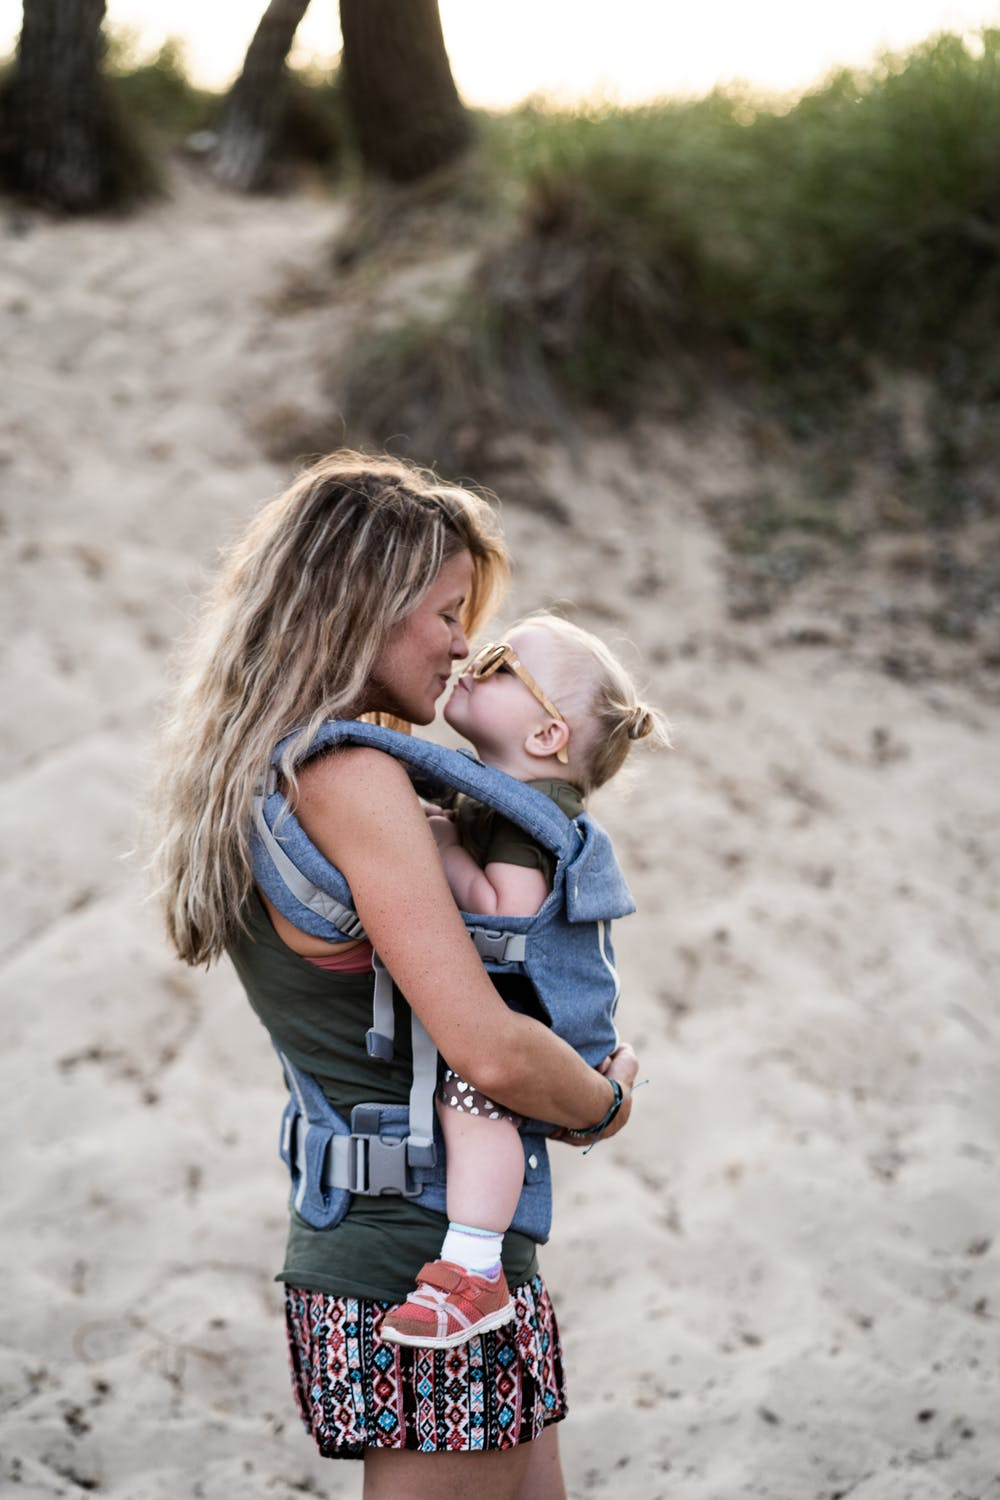 Woman carrying a little girl. | Photo: Pexels